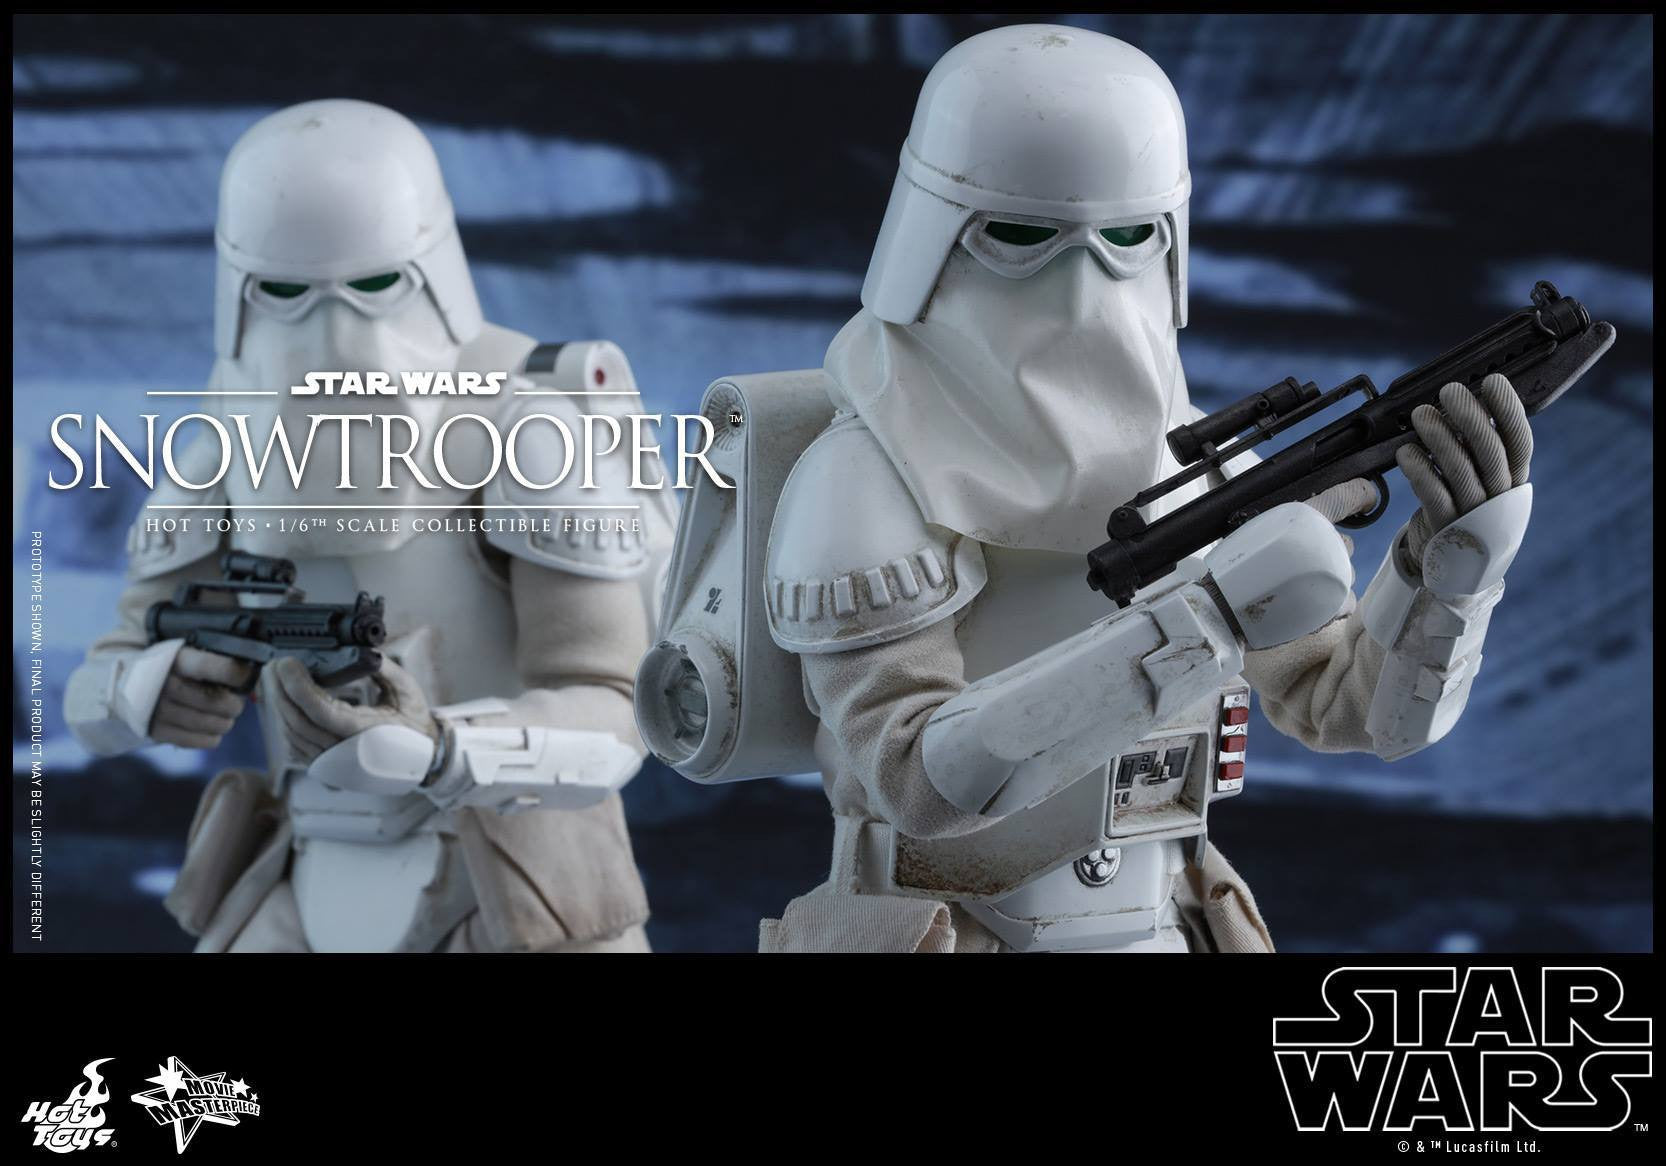 Hot Toys - MMS397 - Star Wars Episode V: The Empire Strikes Back - Snowtrooper - Marvelous Toys - 8